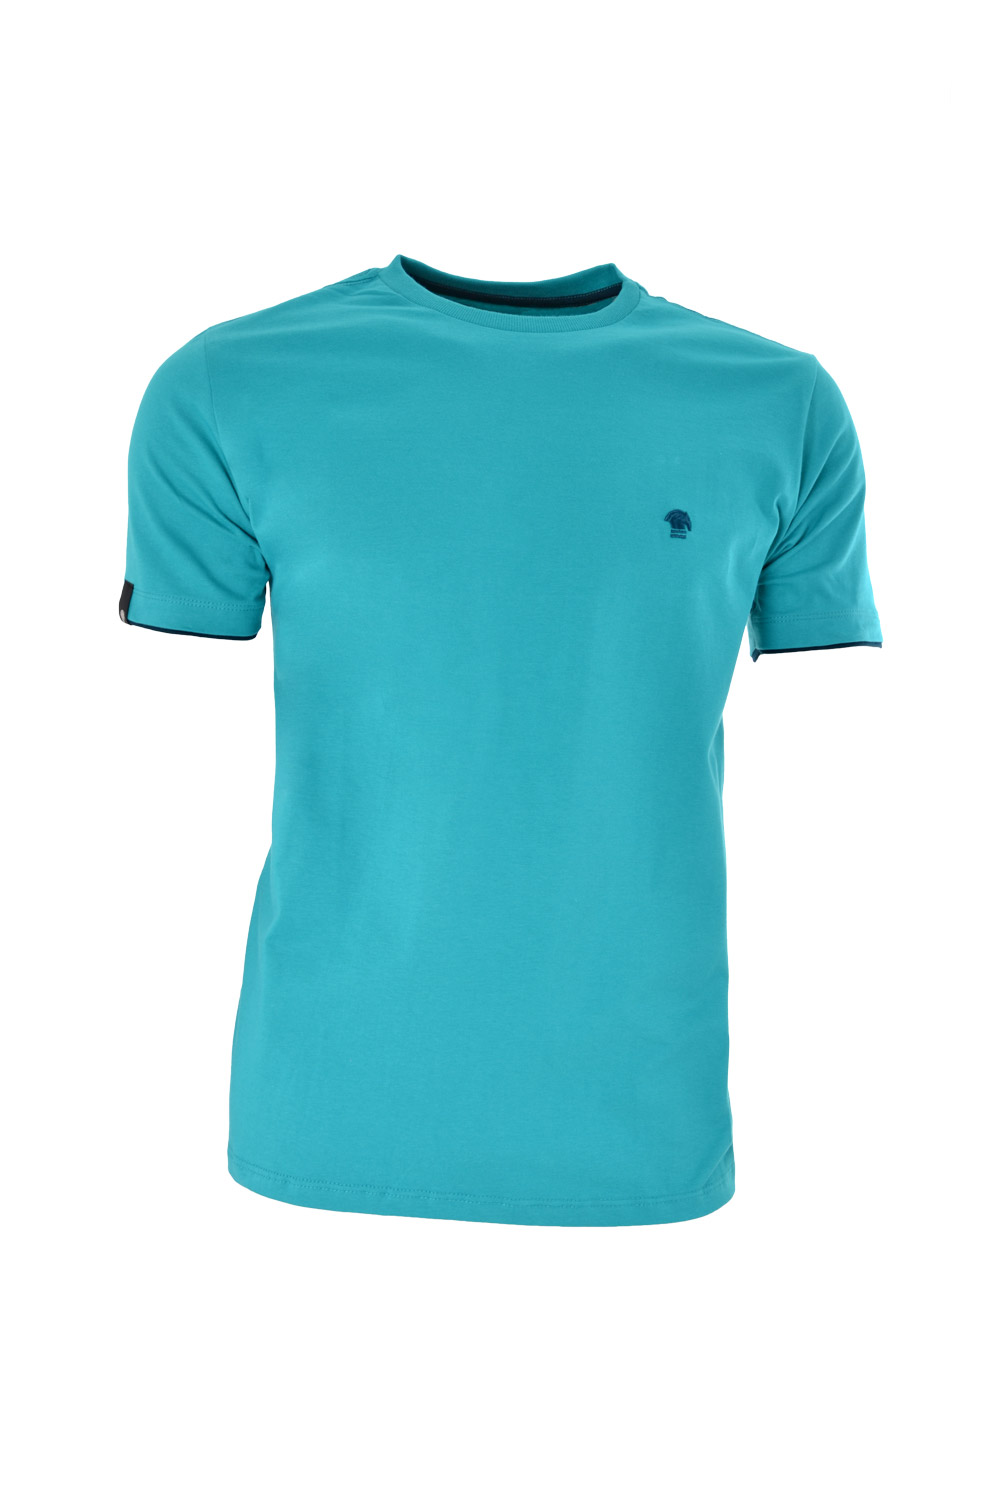 CAMISETA MC BLUES SUPER SLIM ALGODAO GOLA C LISO VERDE MEDIO